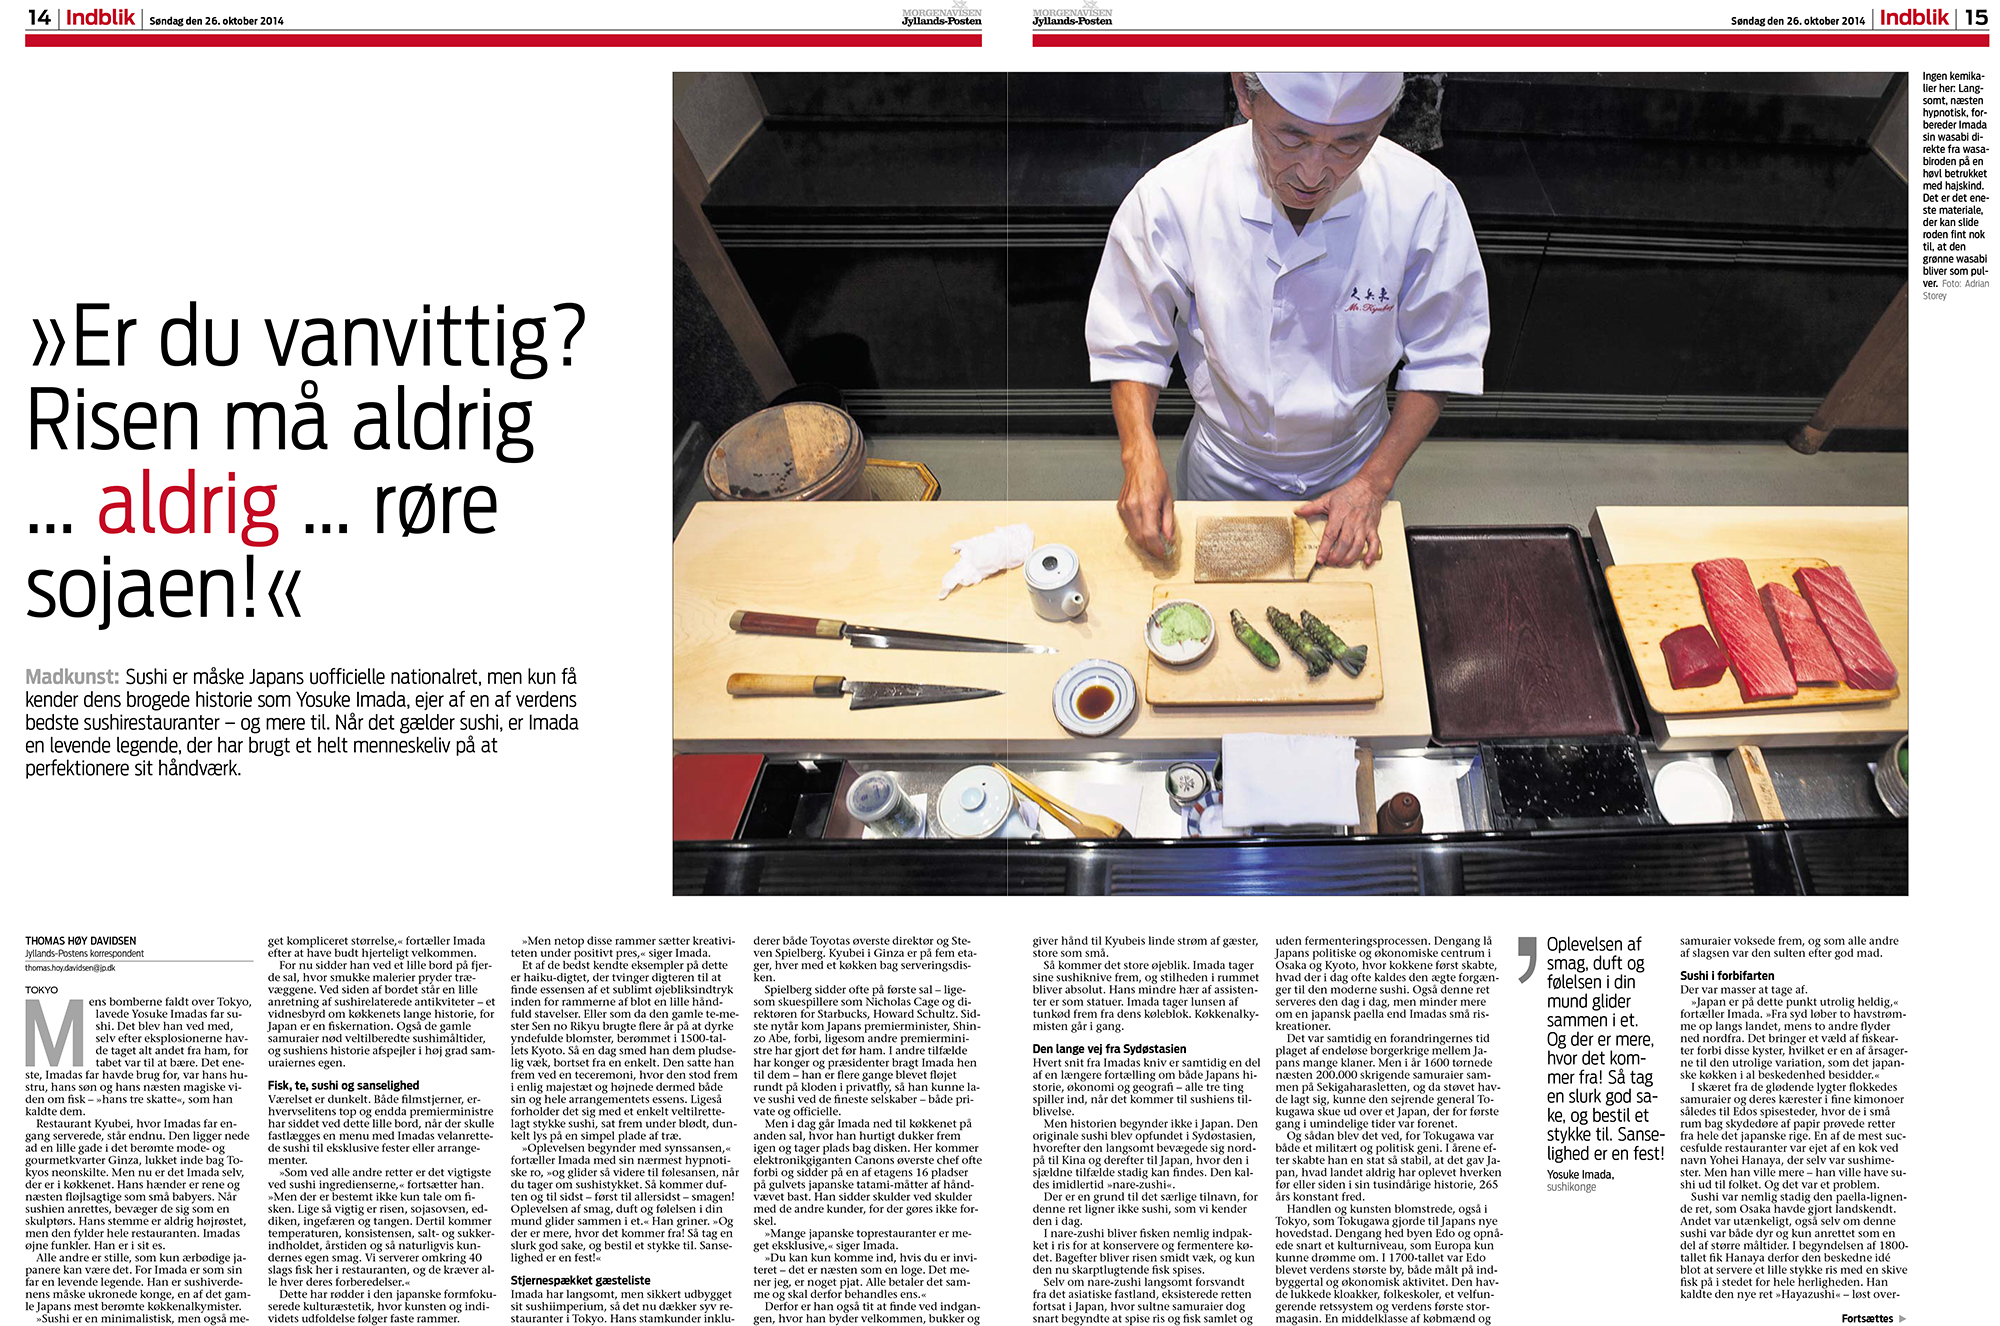 Uchujin/Adrian Storey photos - Kyubei Sushi for Jyllands Posten - page 1